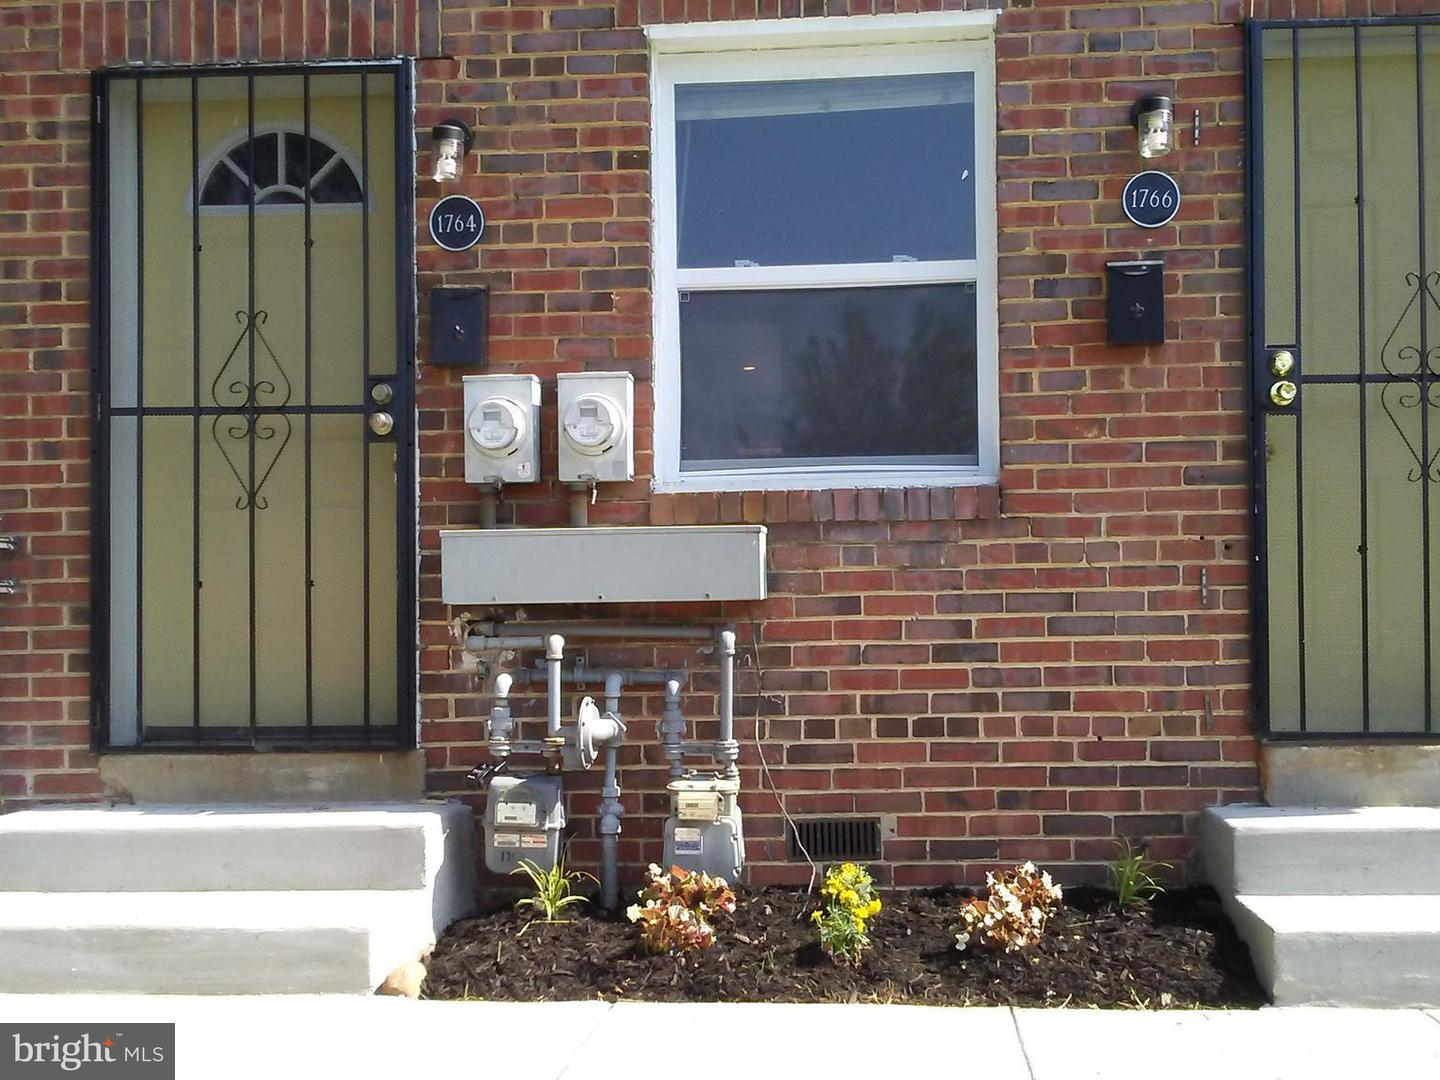 Other Residential for Rent at 17641766 Gales St NE Washington, District Of Columbia 20002 United States